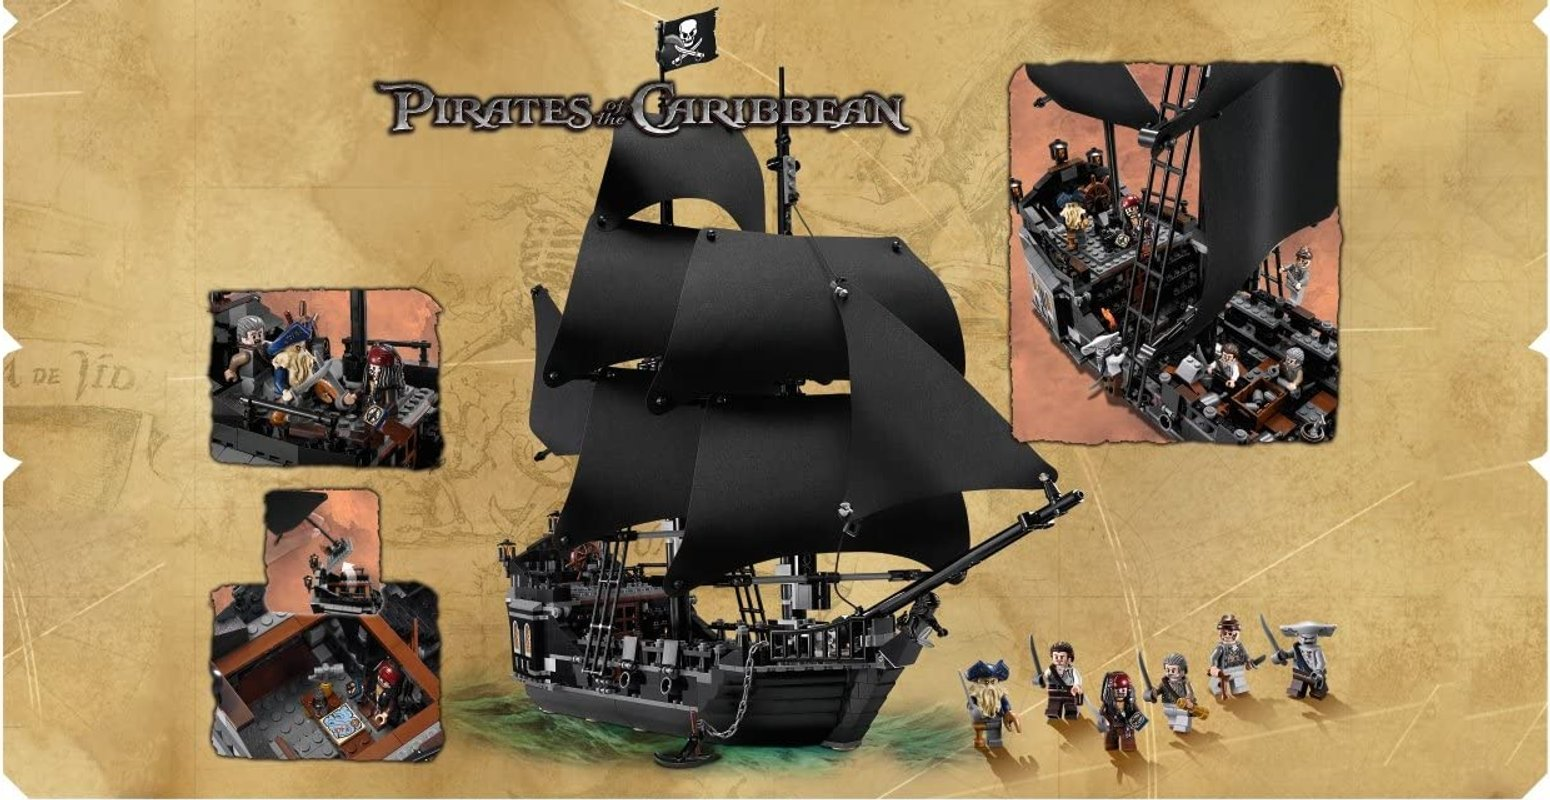 The Black Pearl gameplay